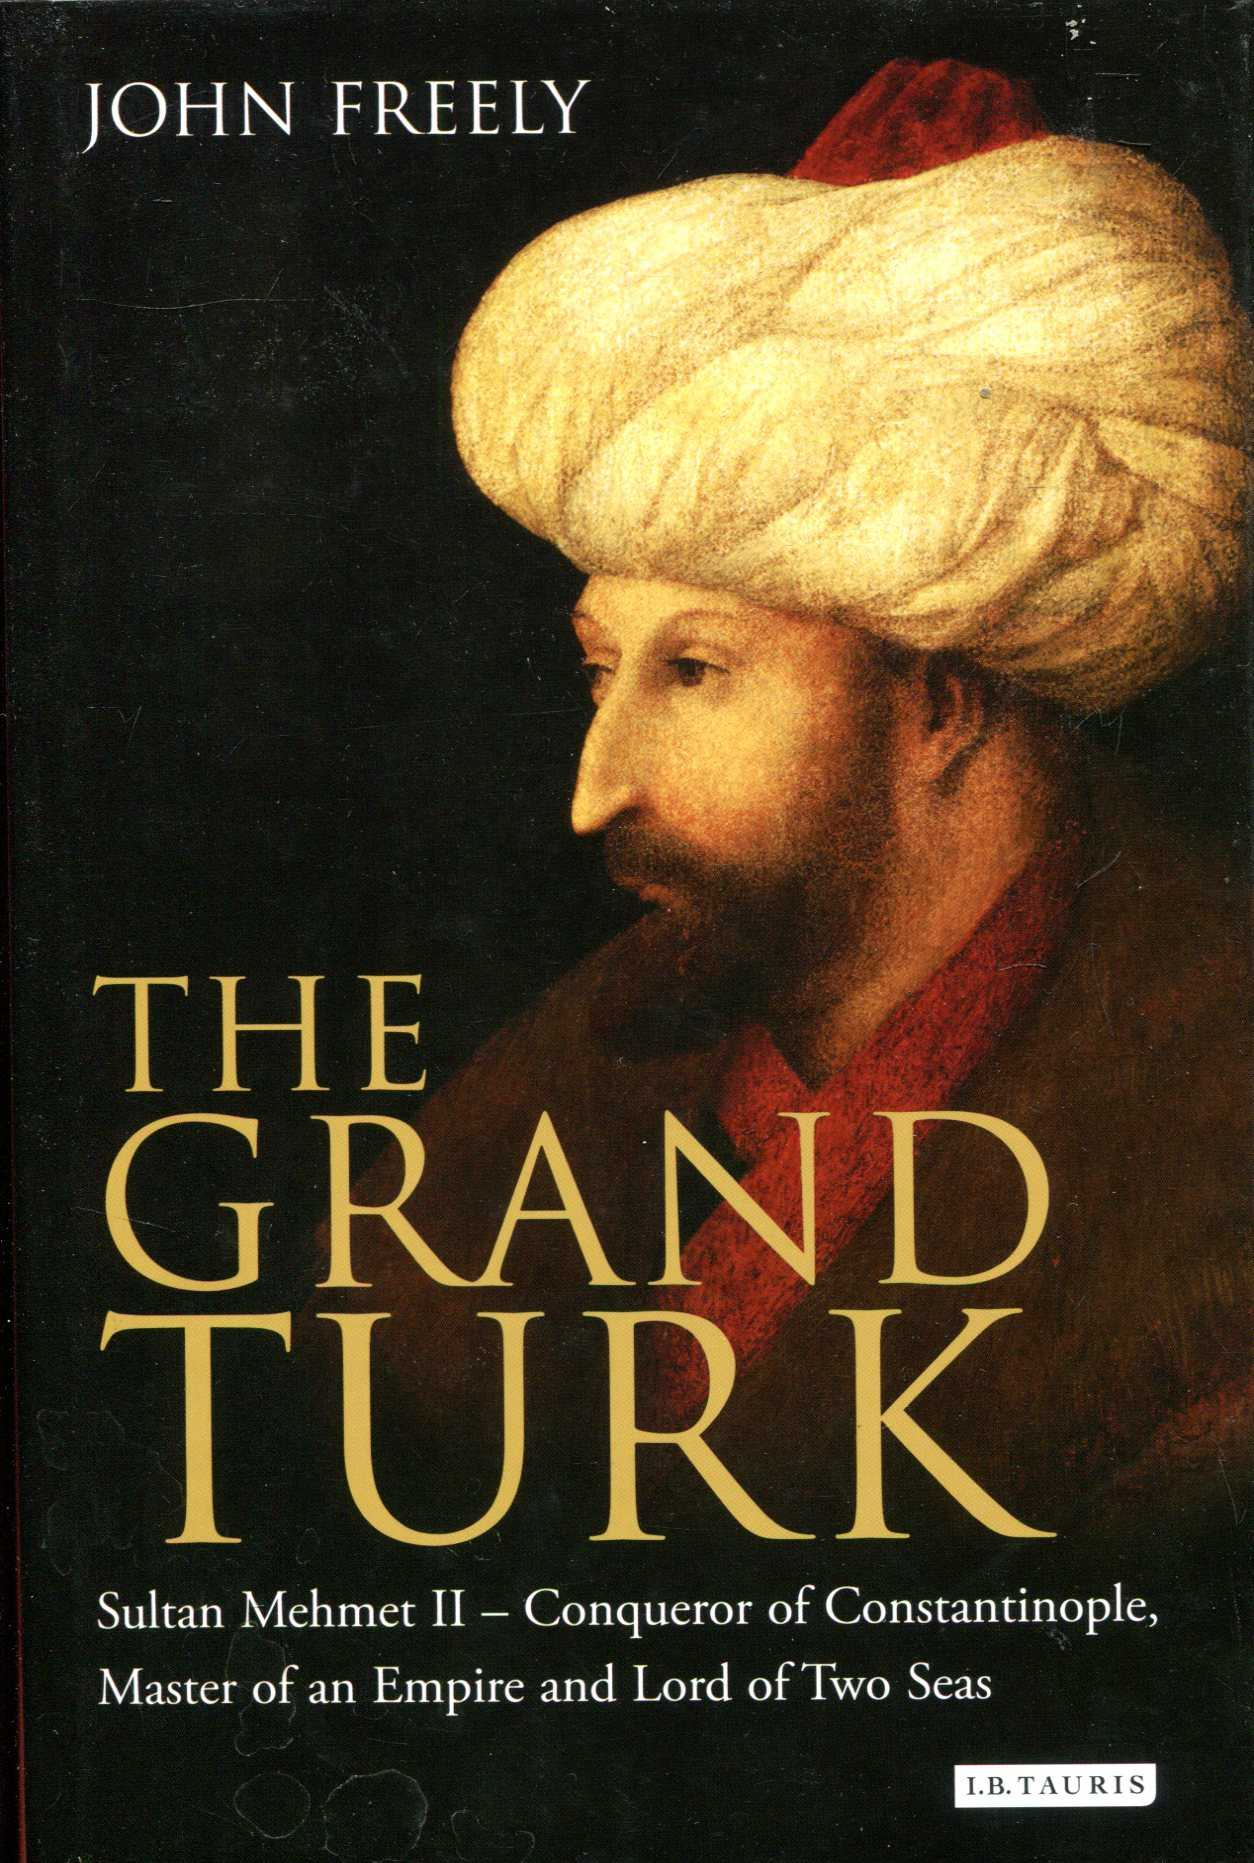 Image for The Grand Turk: Sultan Mehmet II - Conqueror of Constantinople, Master of an Empire